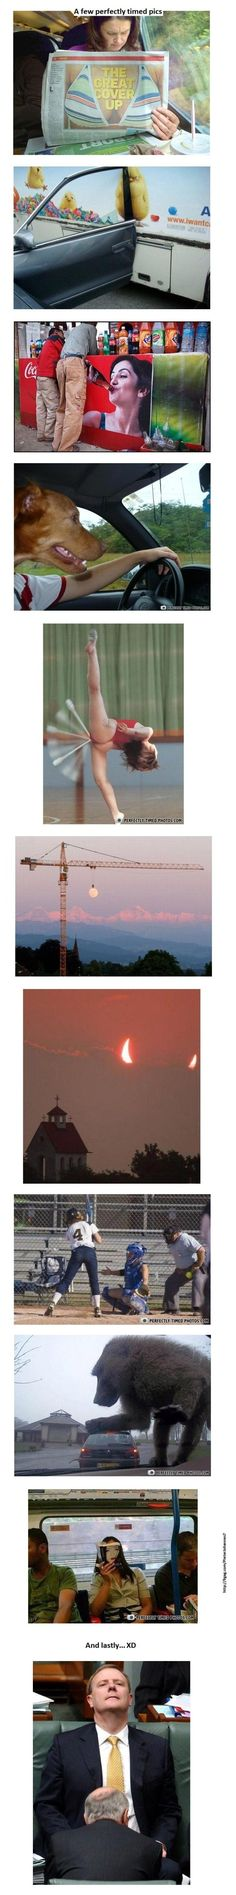 Perfectly timed photos! Ha!